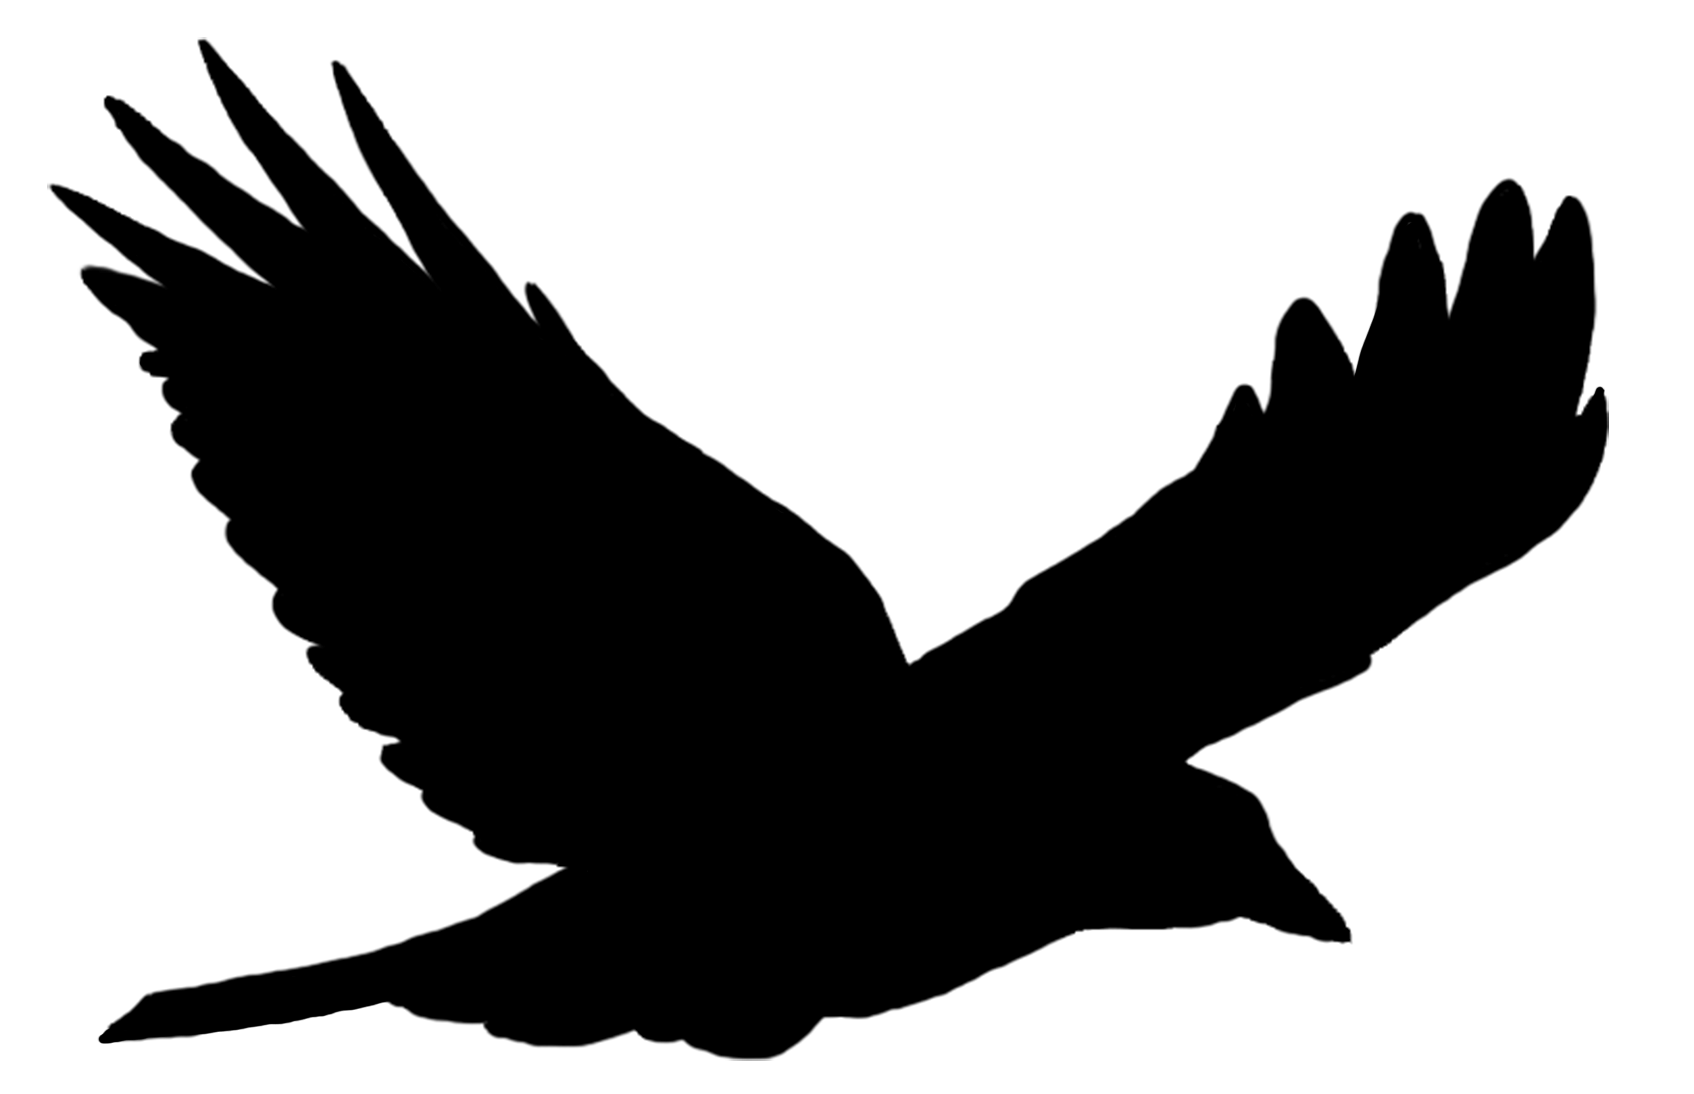 1694x1094 Bird Silhouette Solo Flying Transparent Png